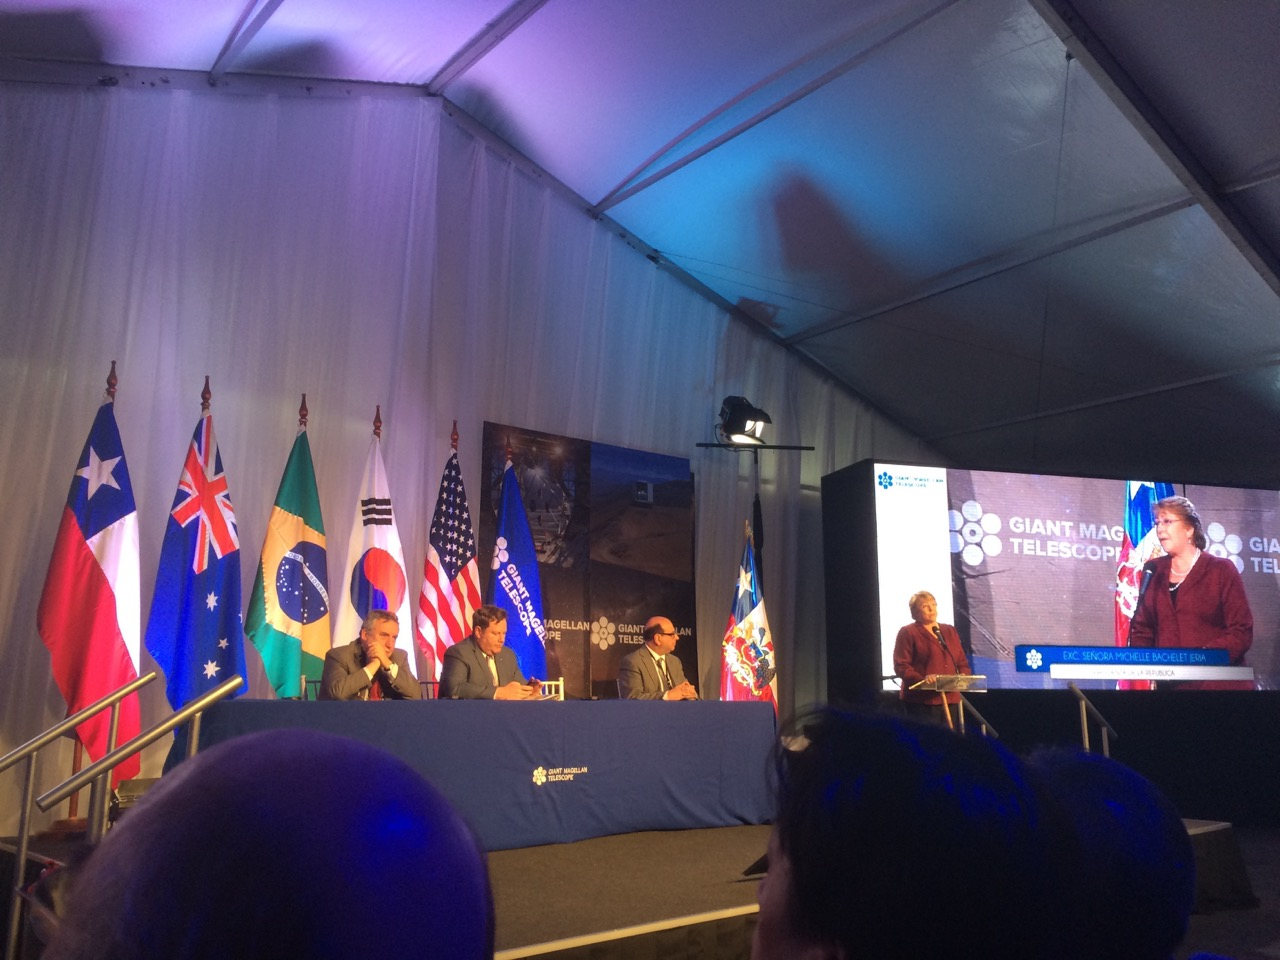 President of the Republic of Chile, Michelle Bachelet, speaking at the November 11th Groundbreaking Celebration for GMTO.